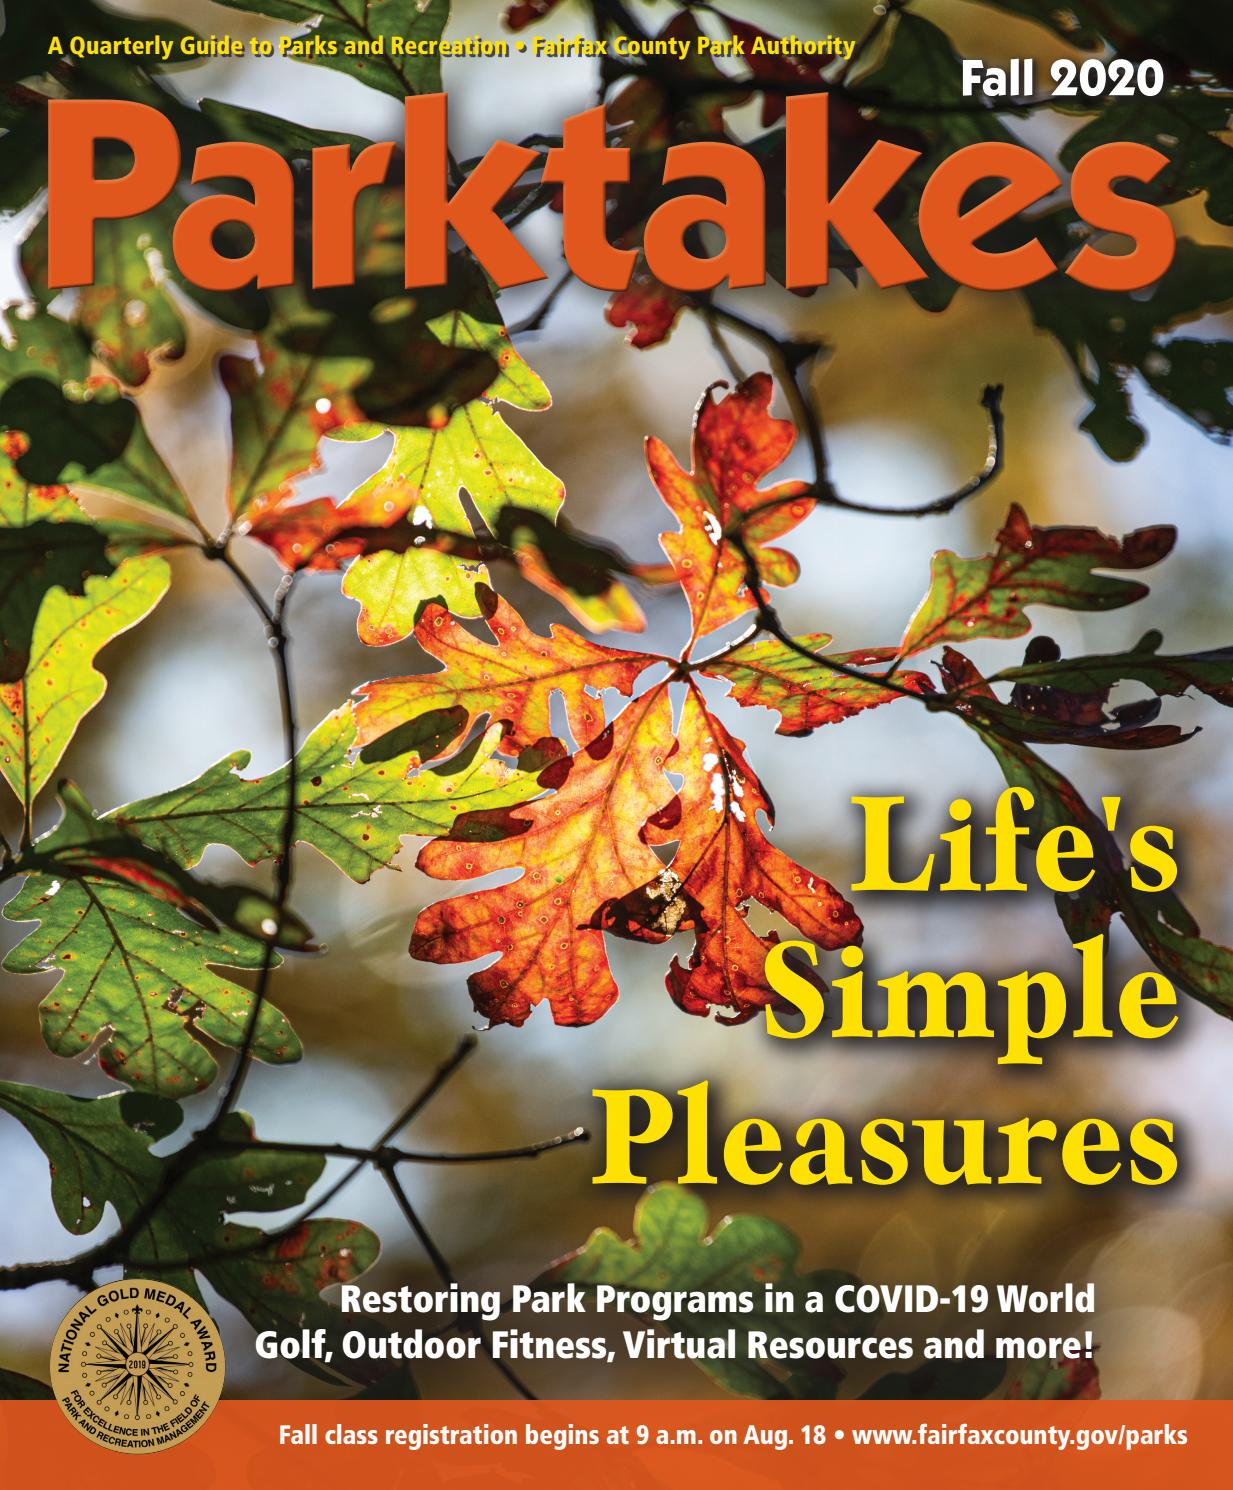 Fall Parktakes 2020 By Fairfax County Park Authority Issuu